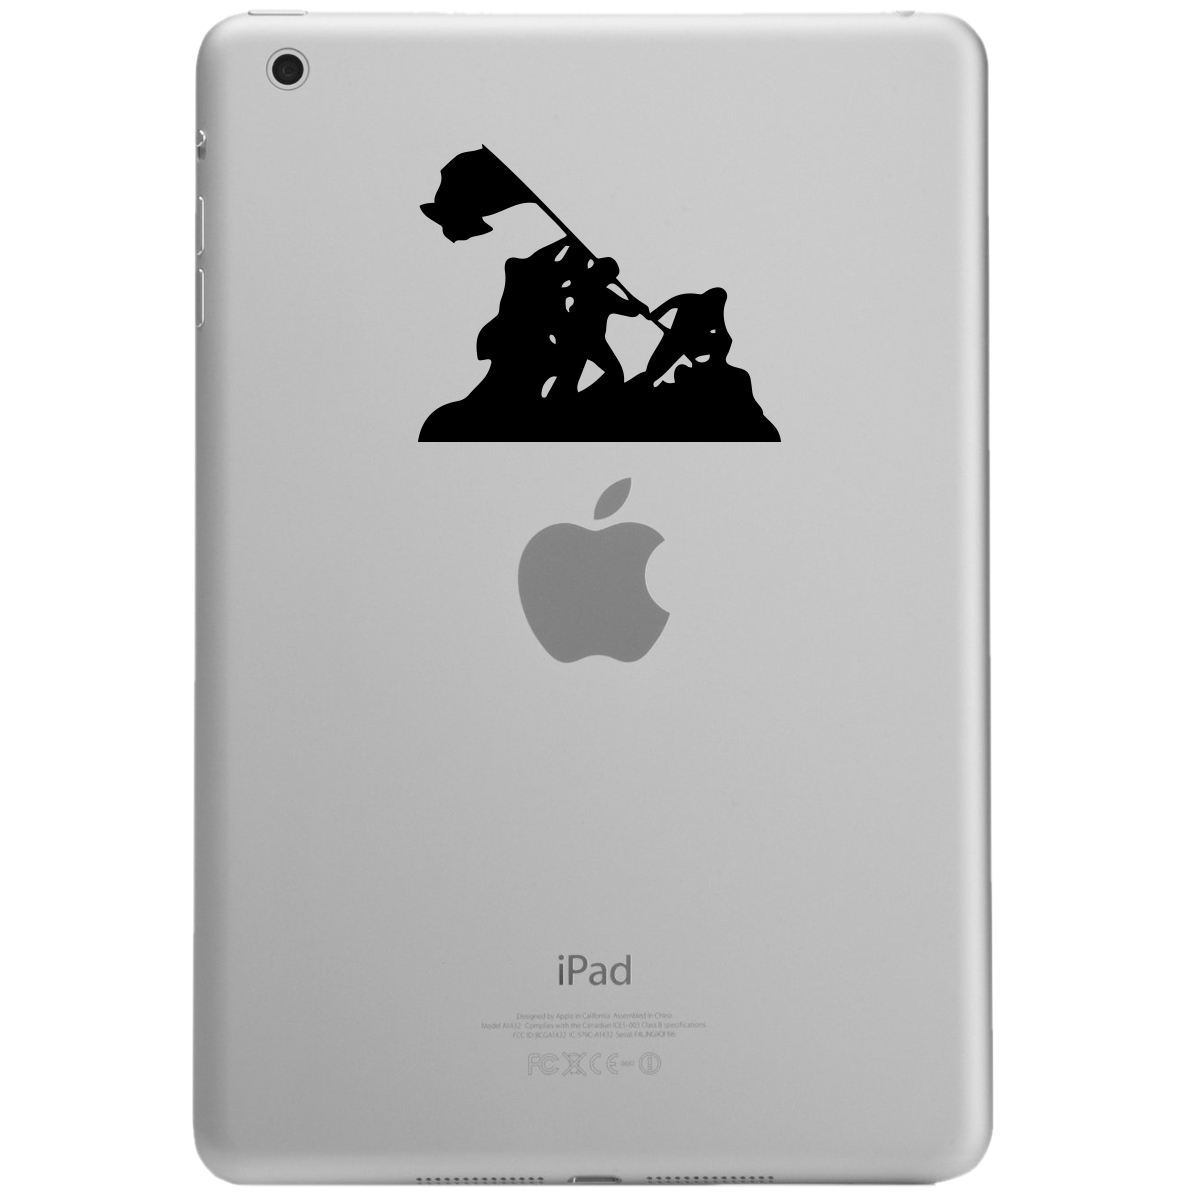 Iwo Jima WWII Silhouette iPad Tablet Vinyl Sticker Decal